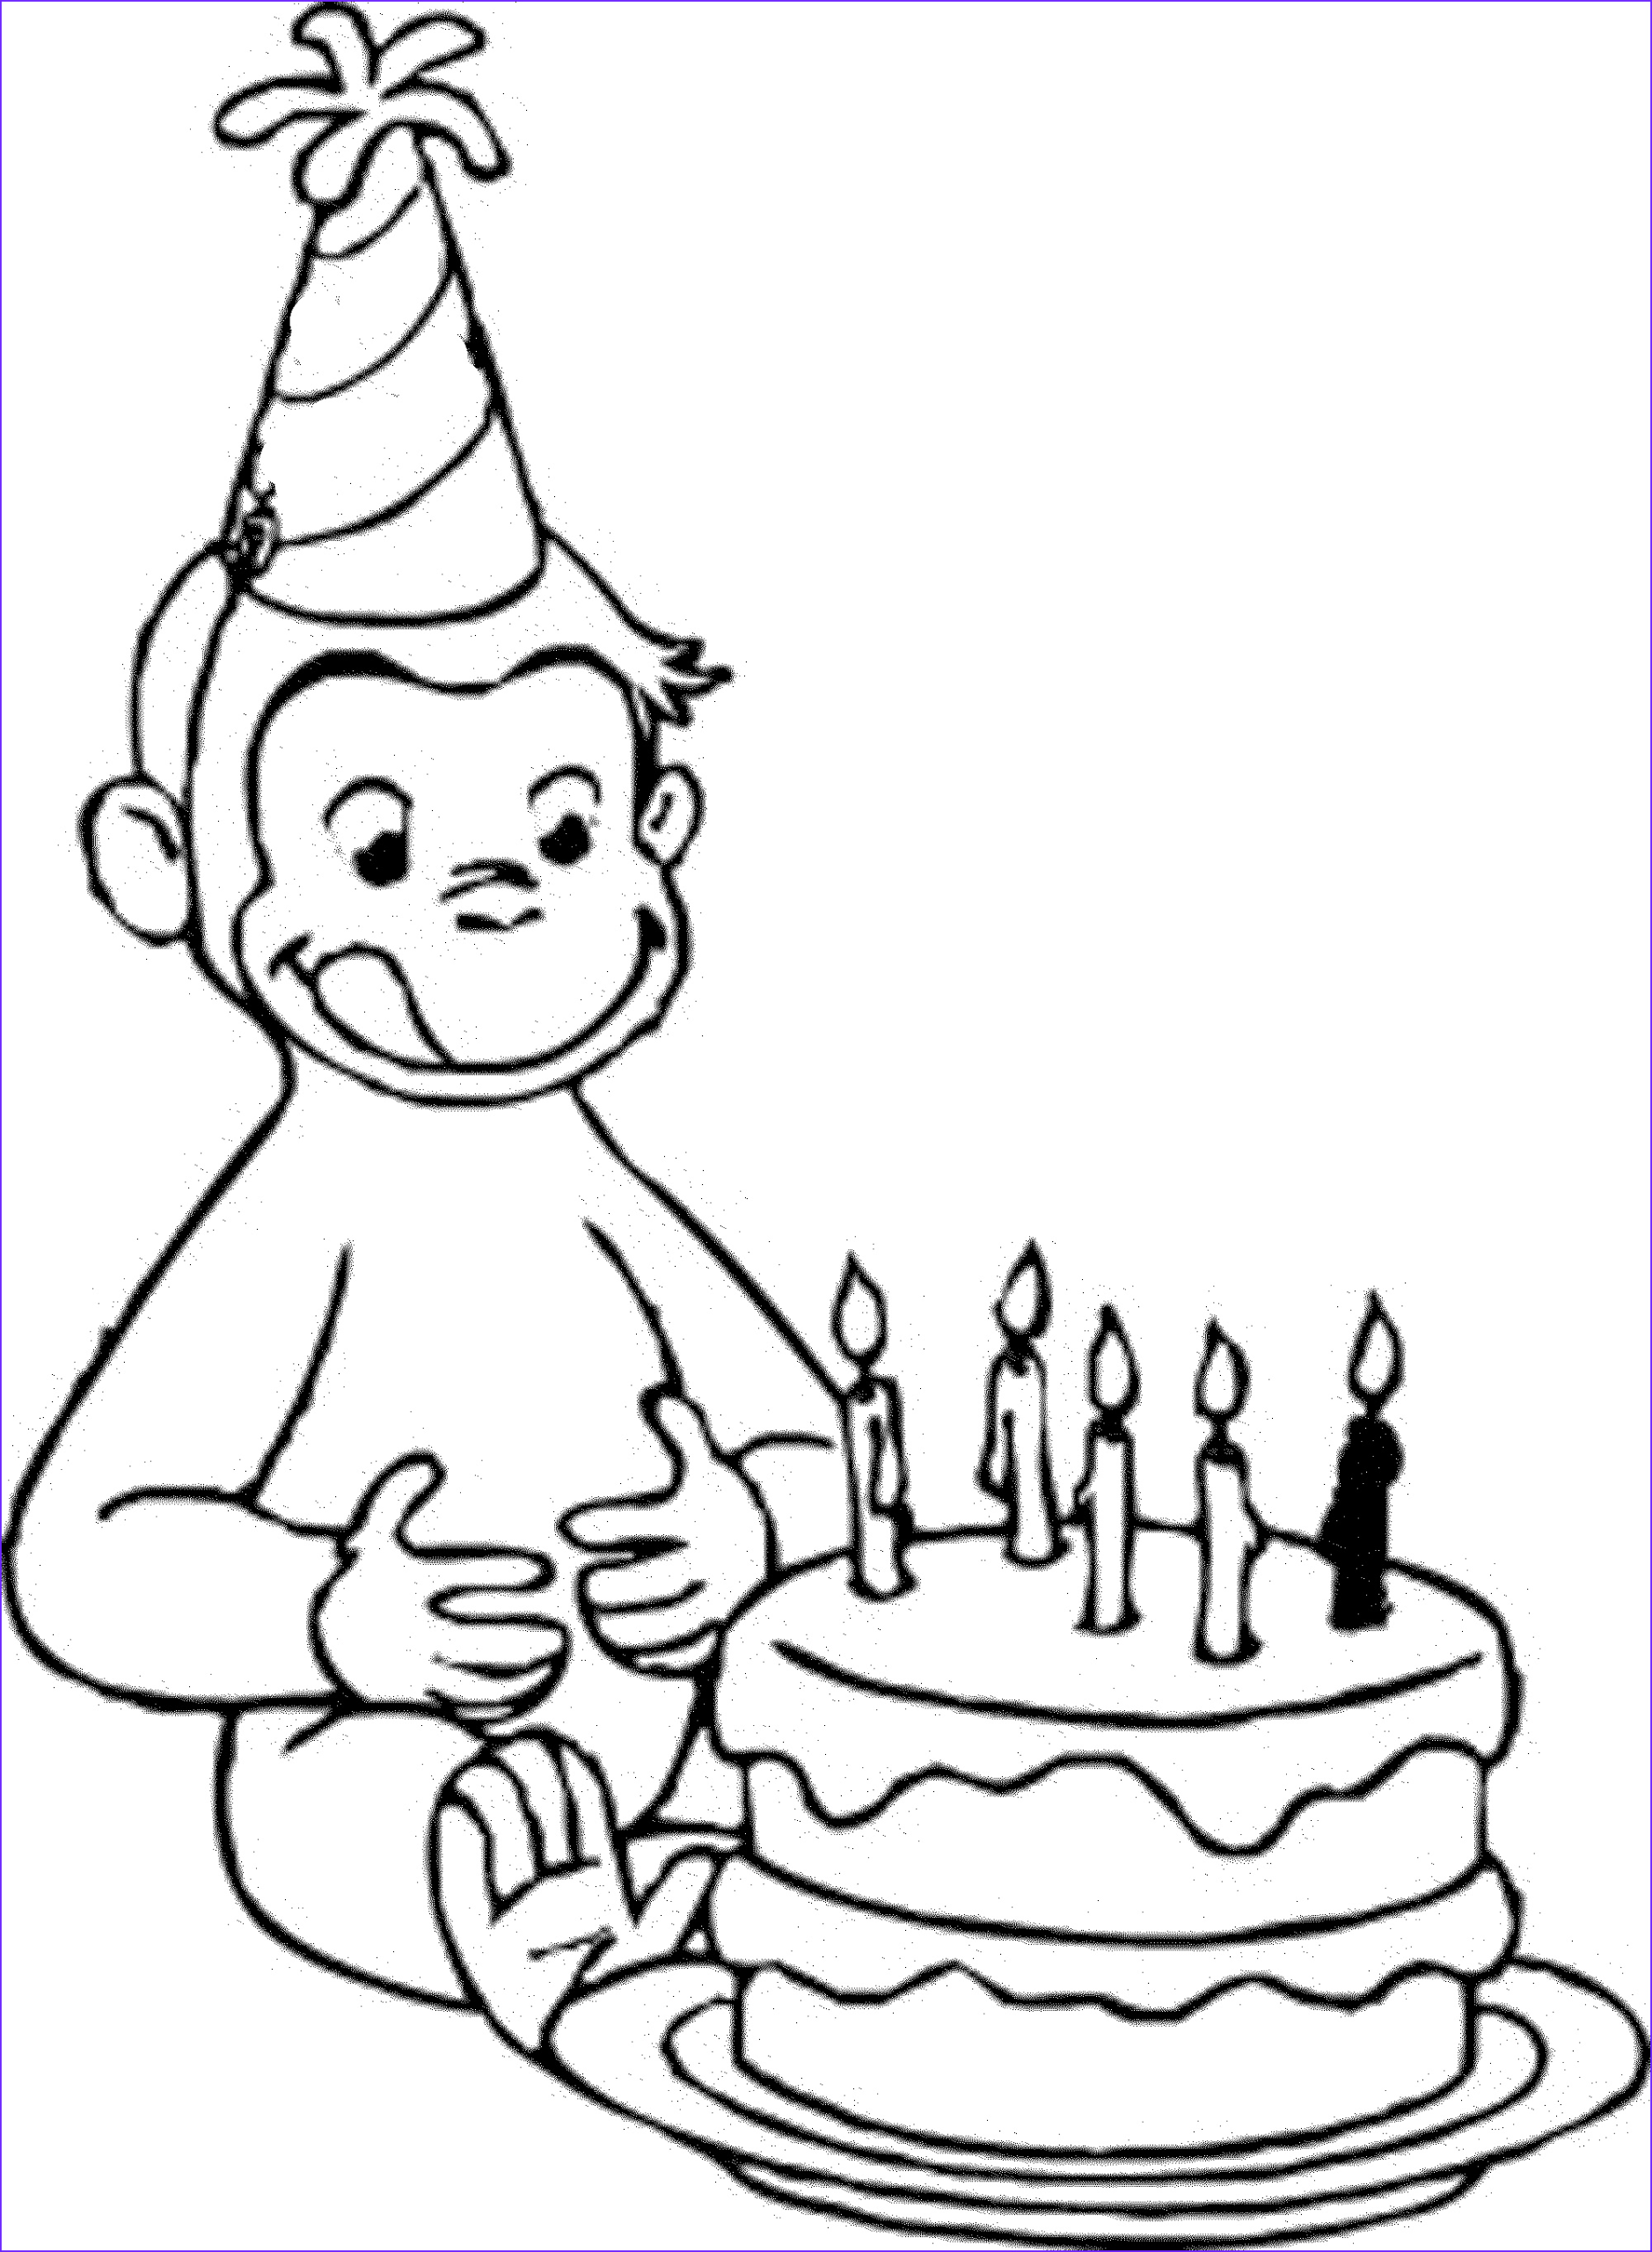 Coloring for Boys Inspirational Image Happy Birthday Coloring Pages